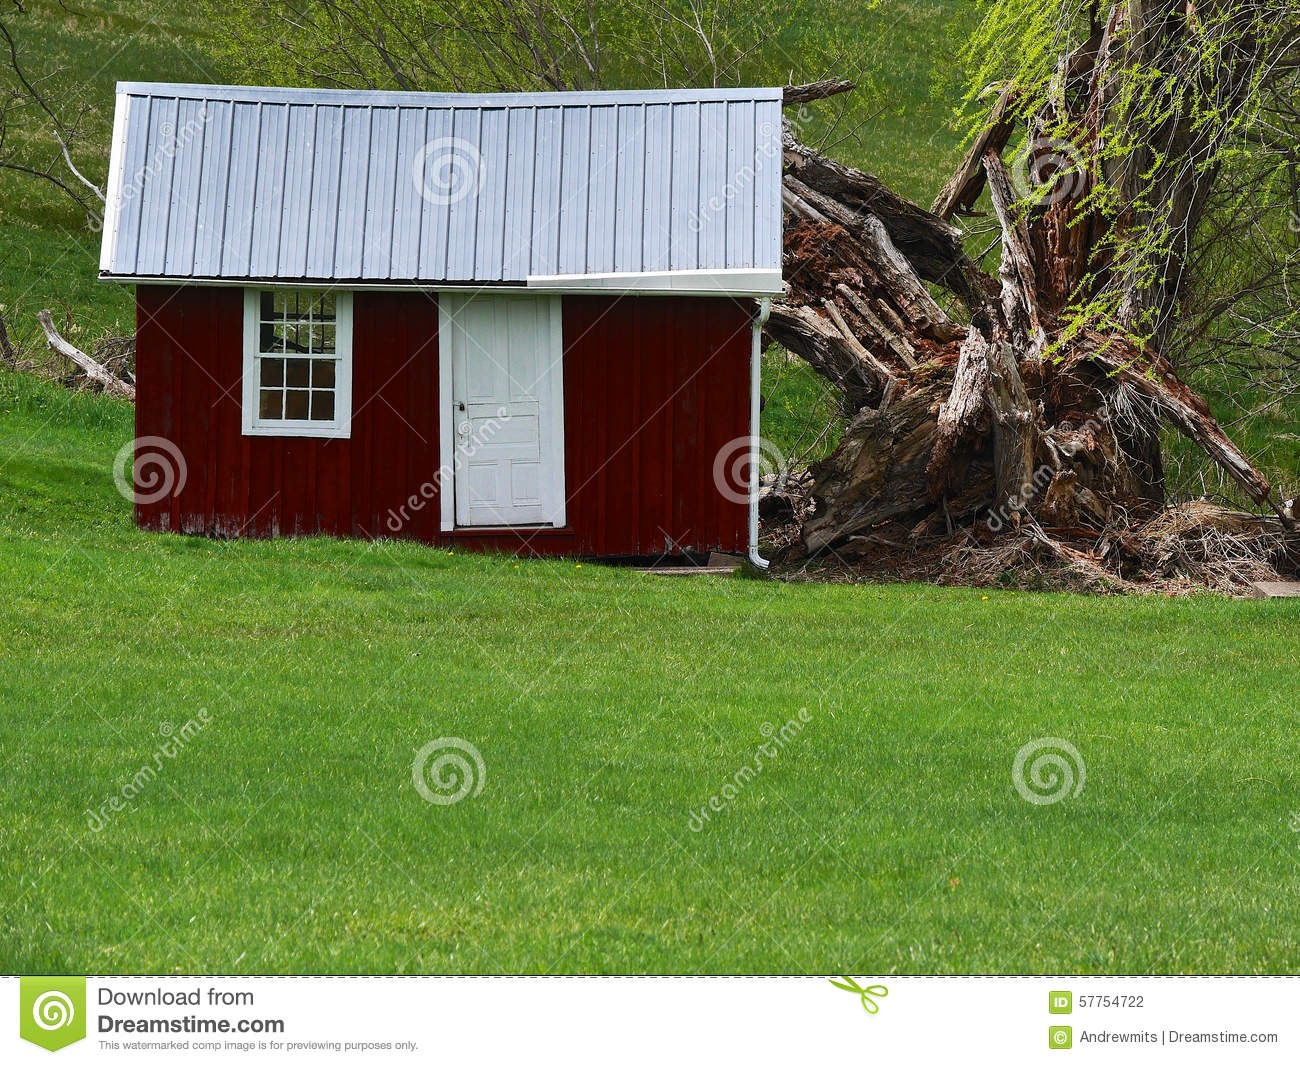 Little Red Shed With Metal Roof Stands Out As Landscape Feature At